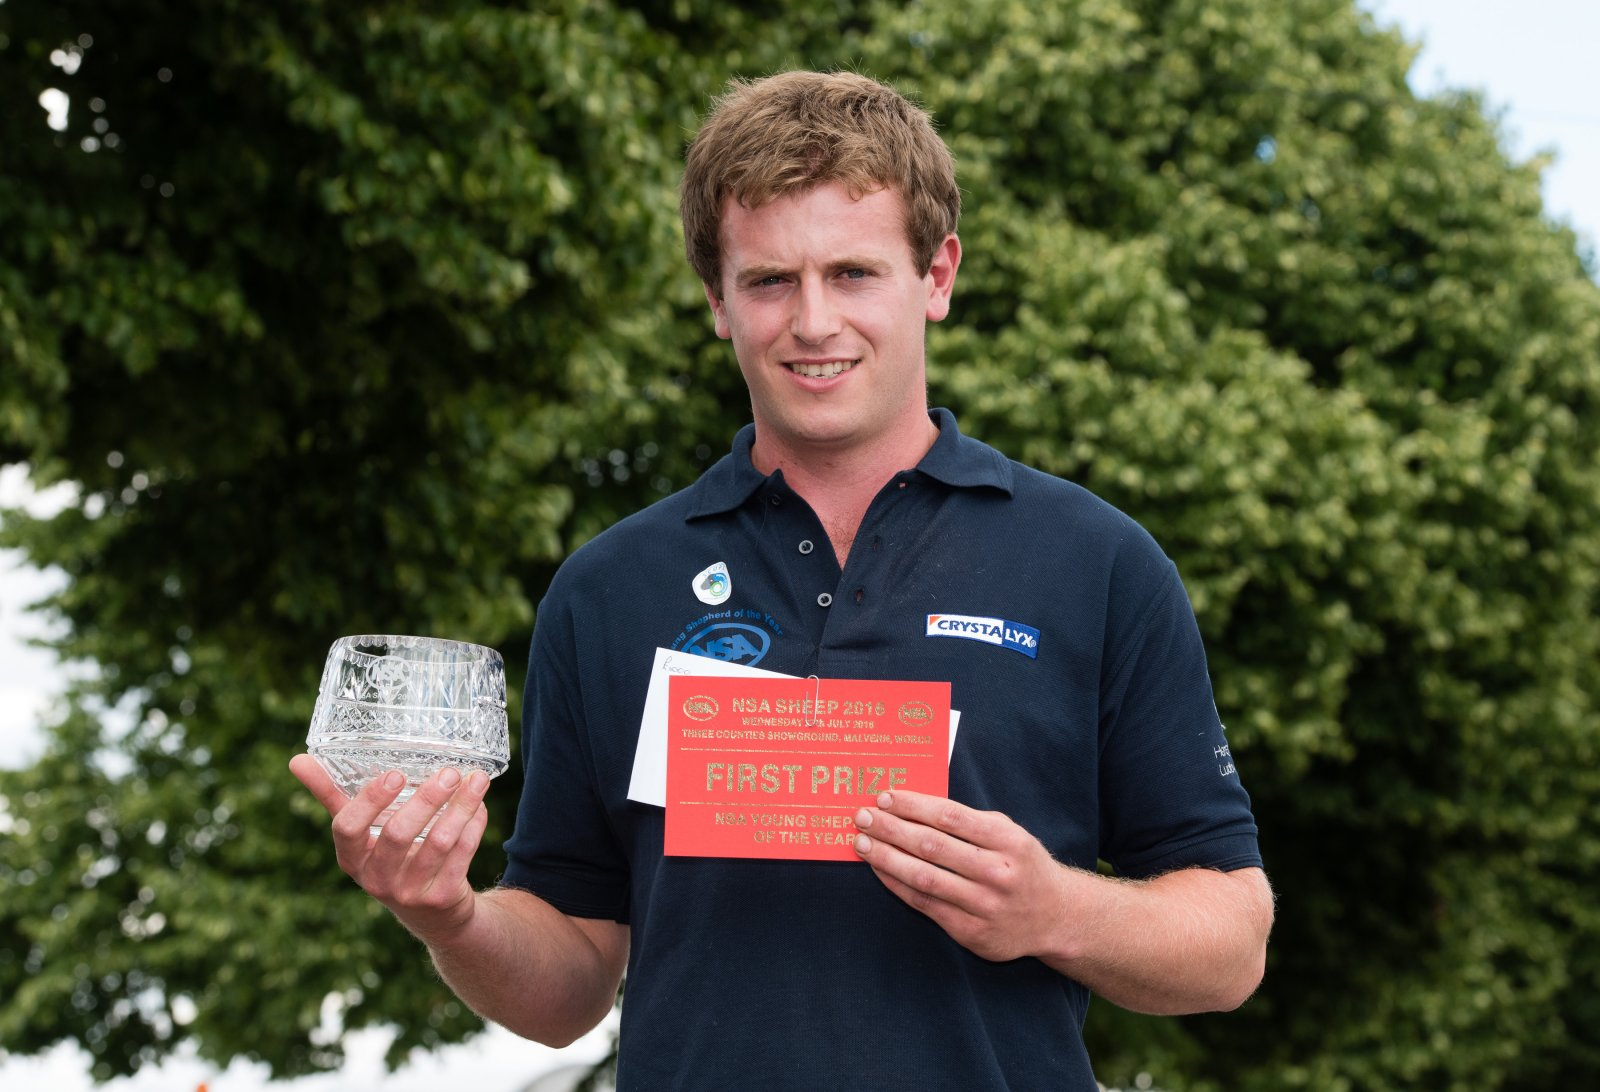 Young Shepherd of the Year winner - Richard Carter of NSA Marches Region